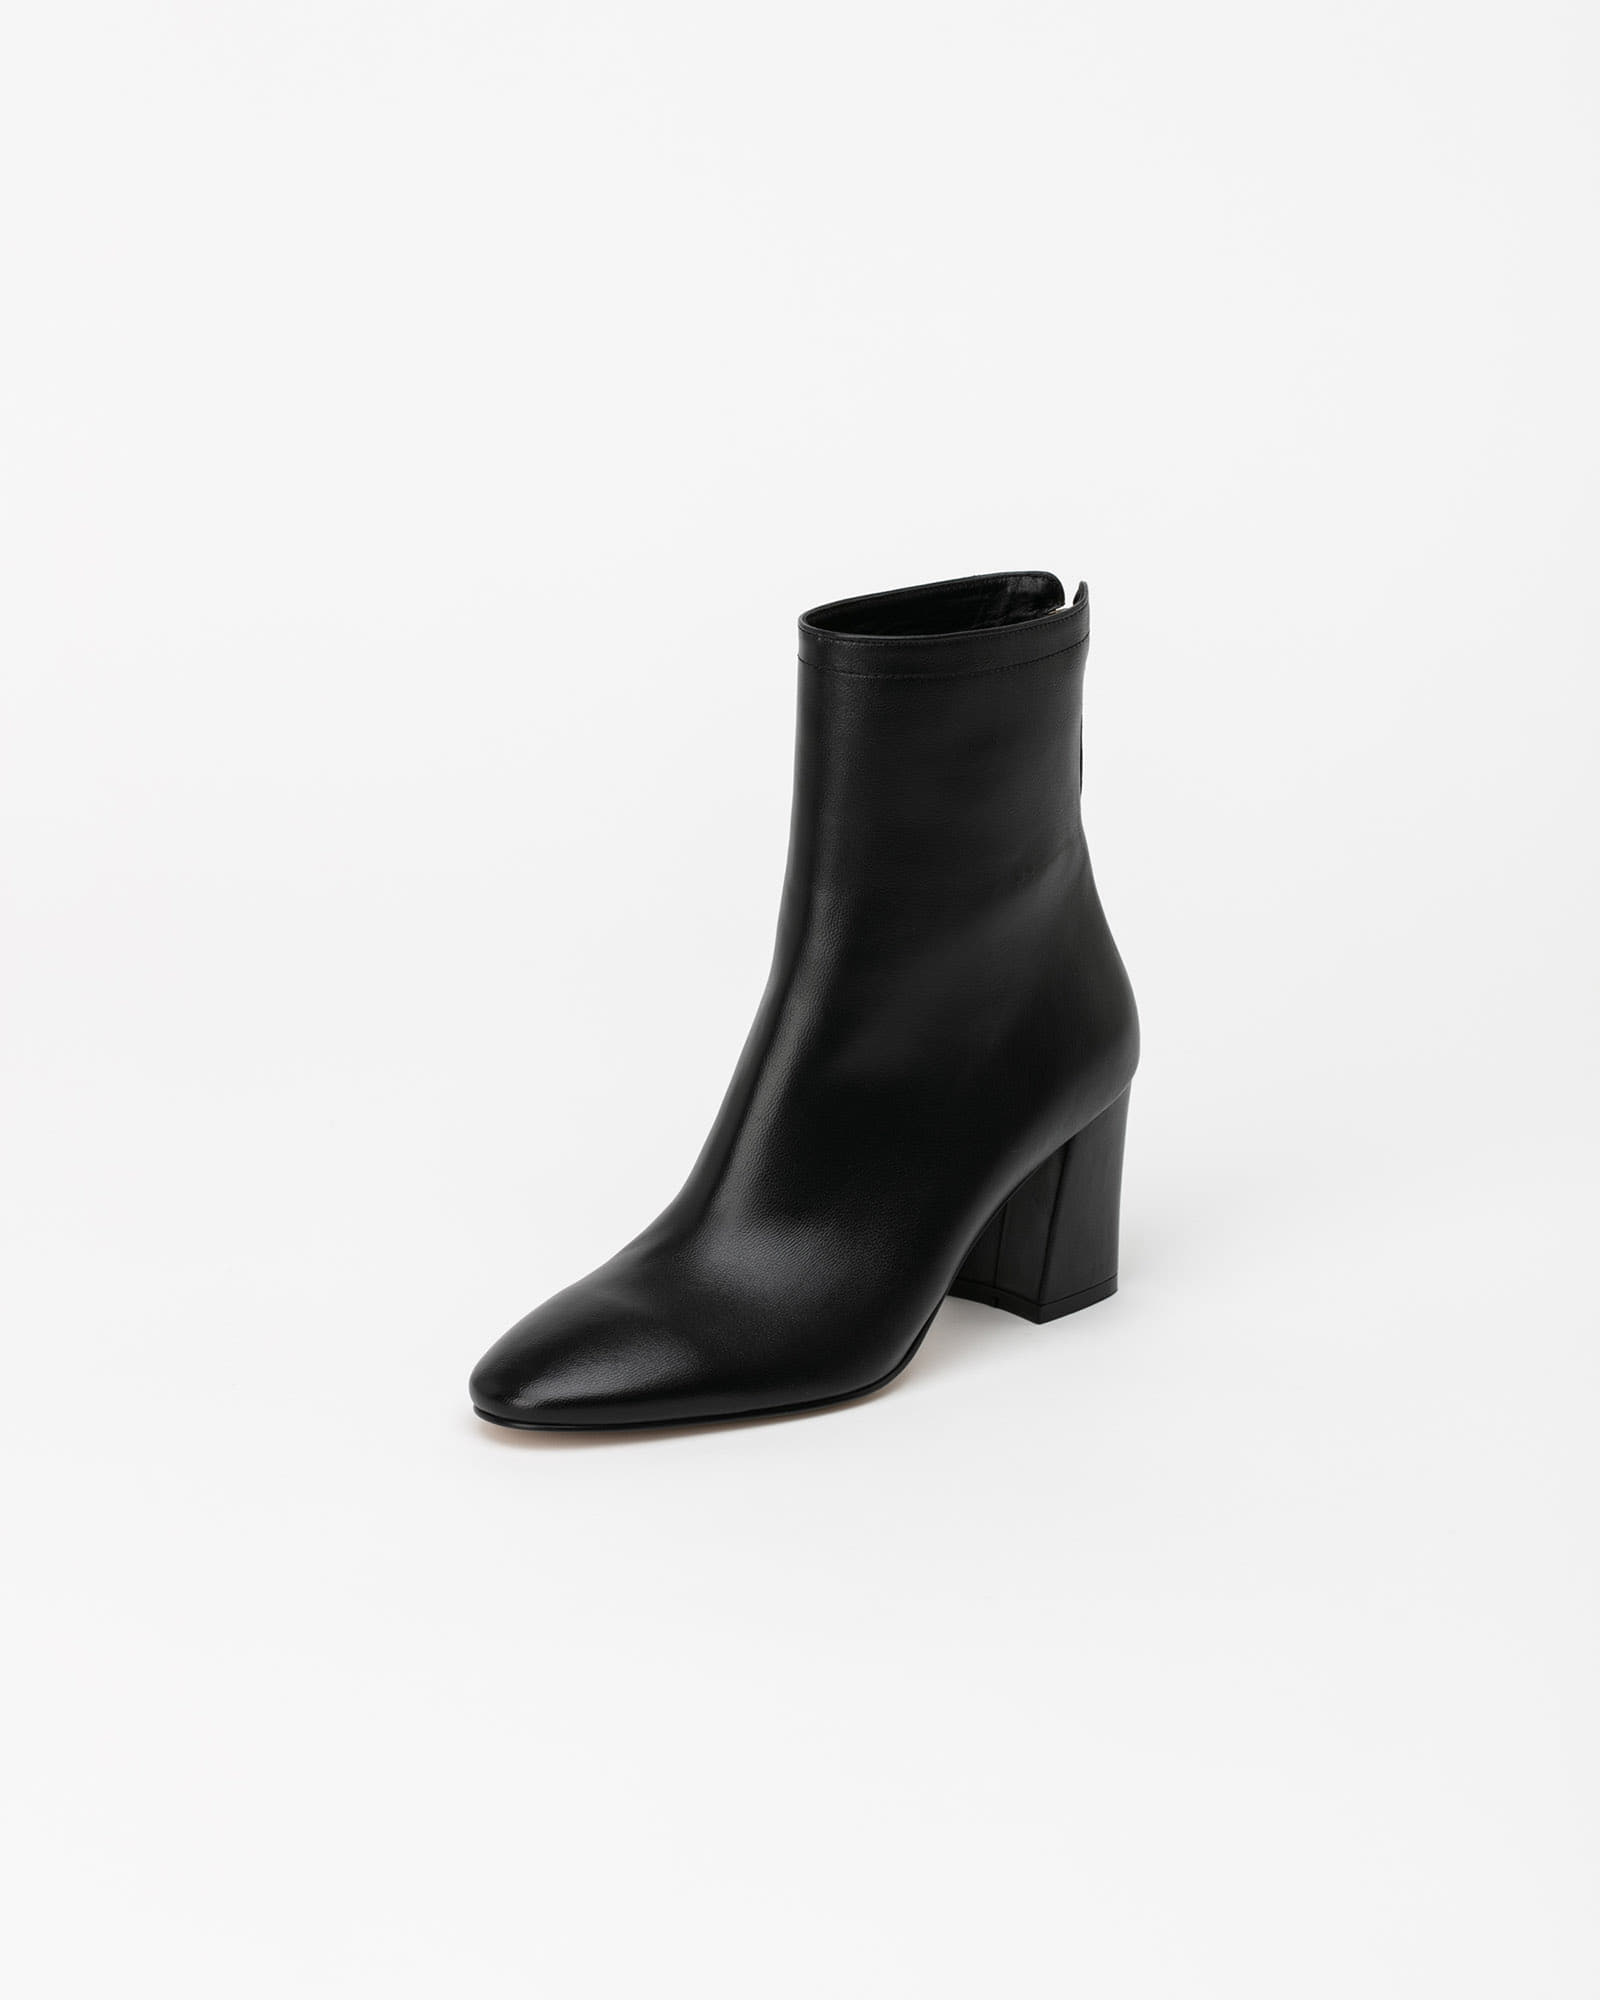 Siena Boots in Black